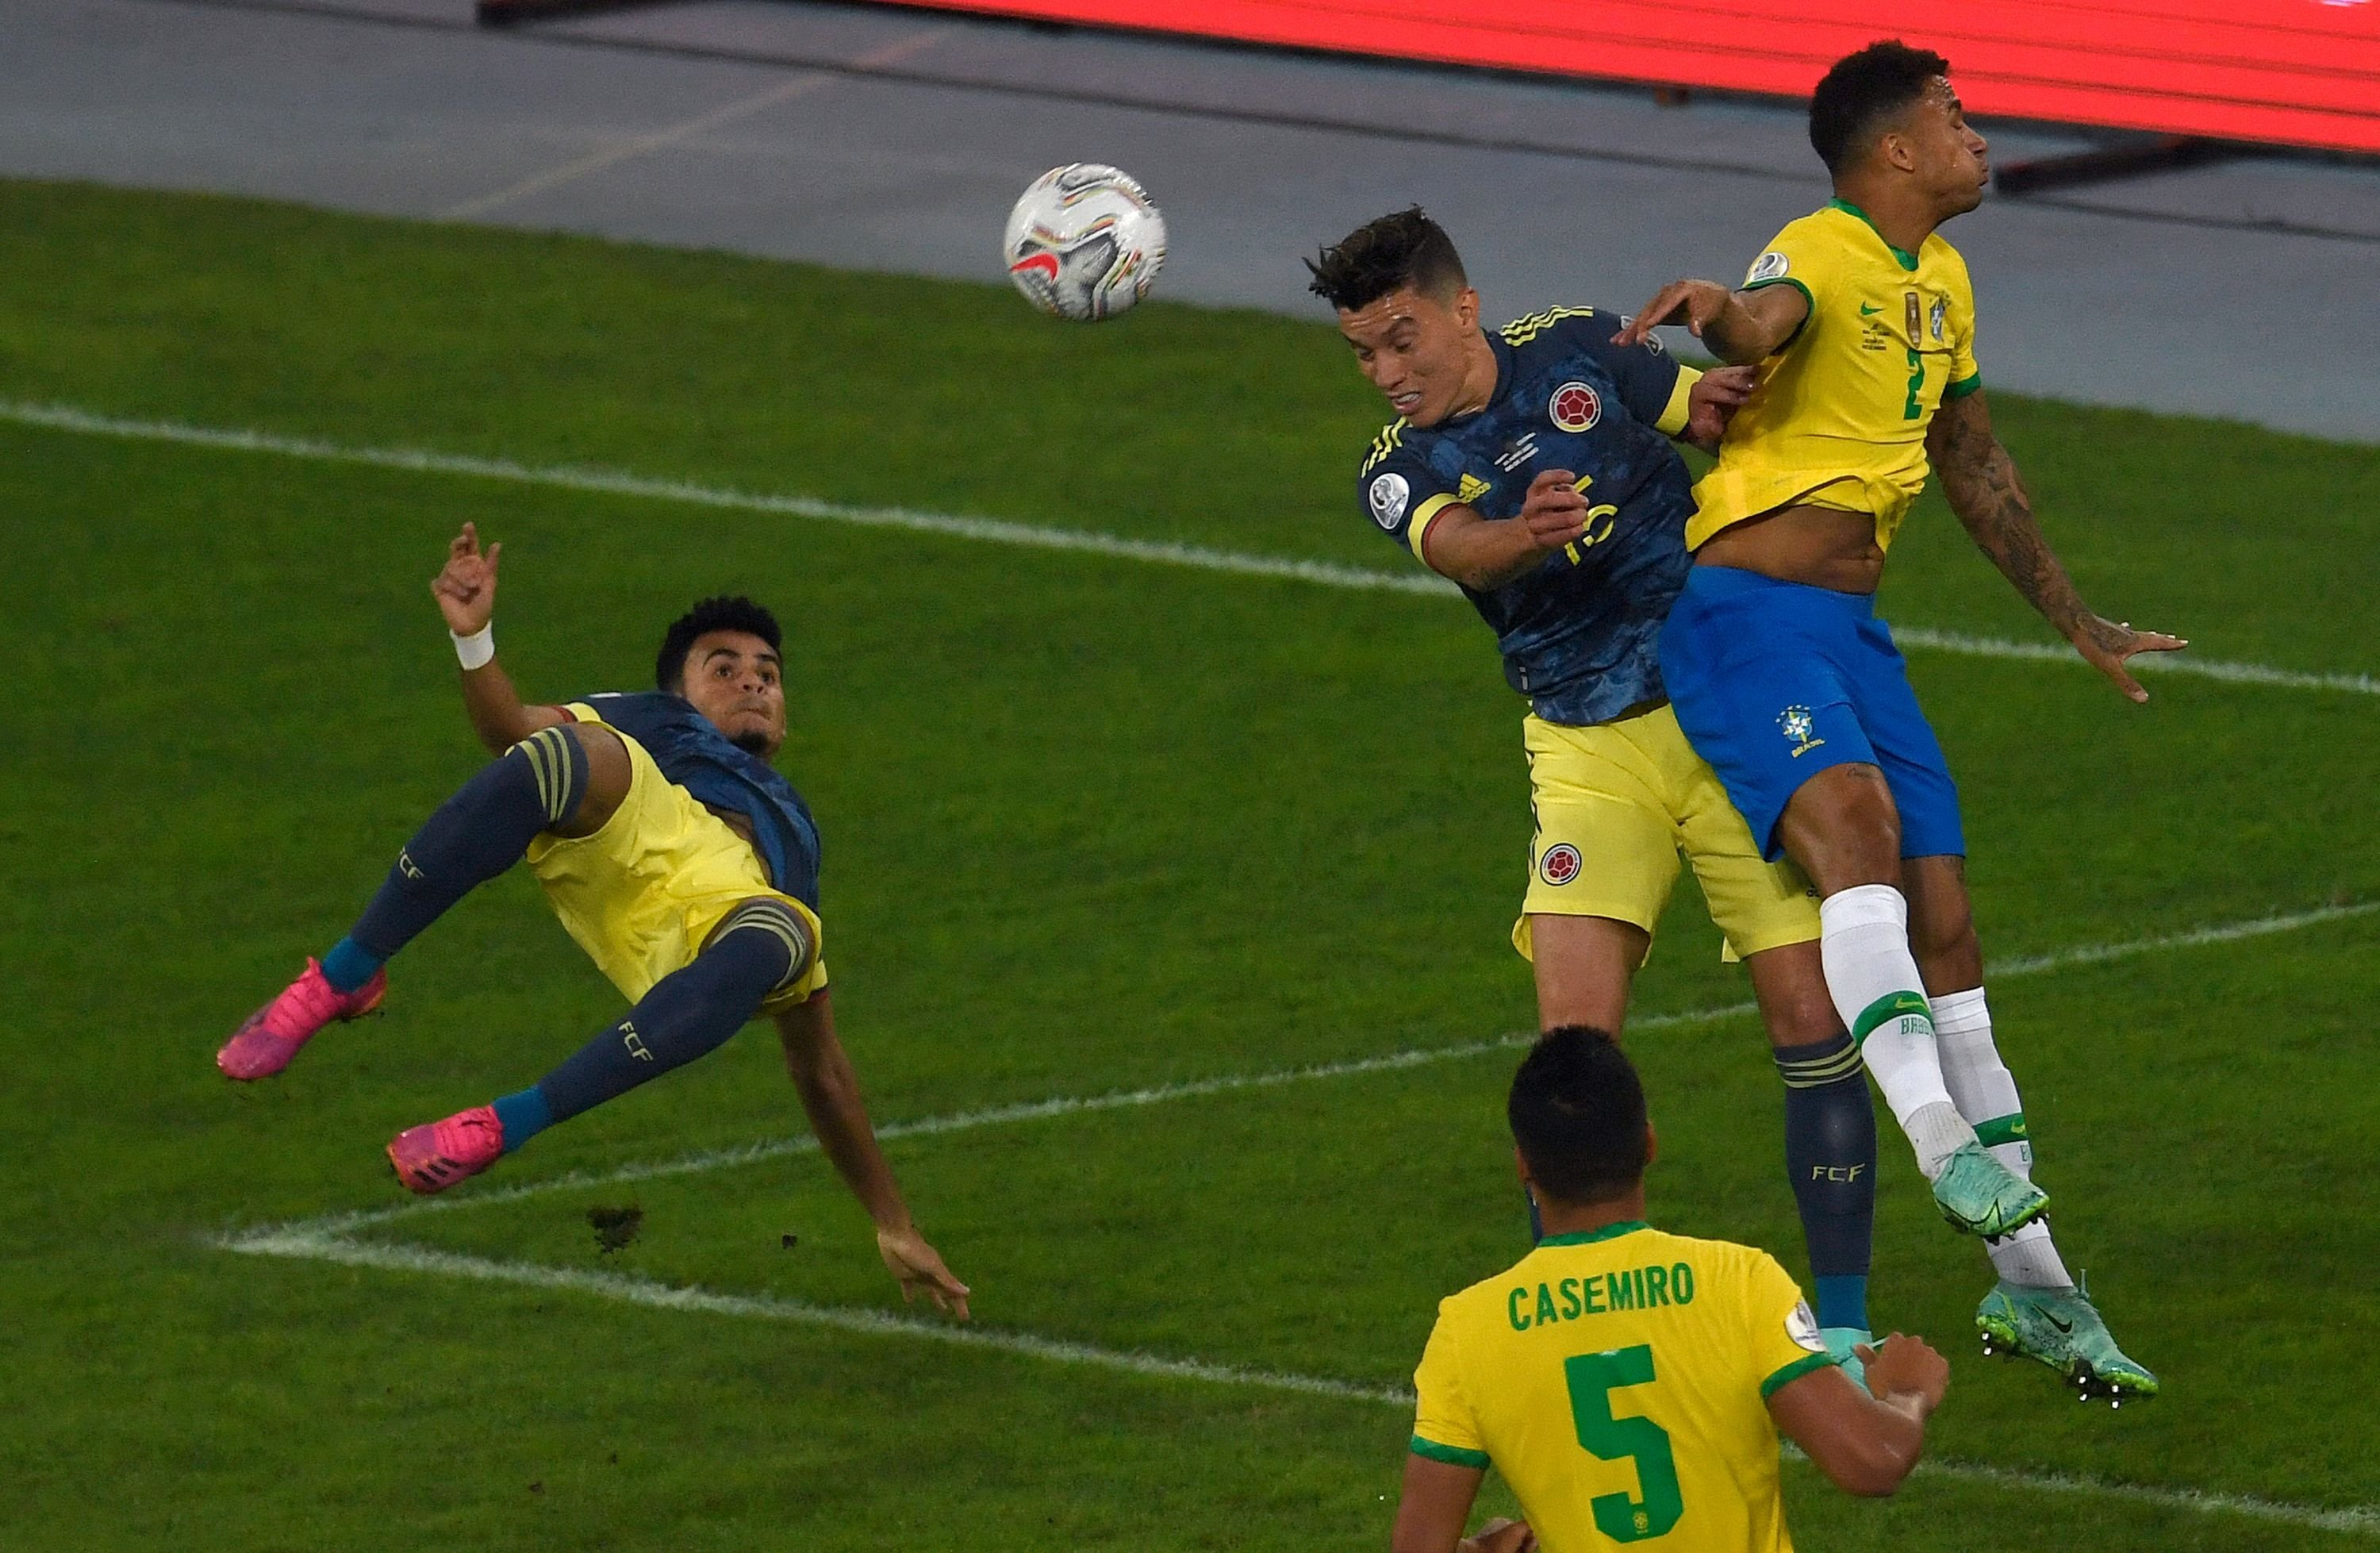 Colombia's Luis Diaz (L) prepares to shoot and score against Brazil during a Copa America 2021 group phase match at the Nilton Santos Stadium in Rio de Janeiro, Brazil, June 23, 2021.(AFP Photo)